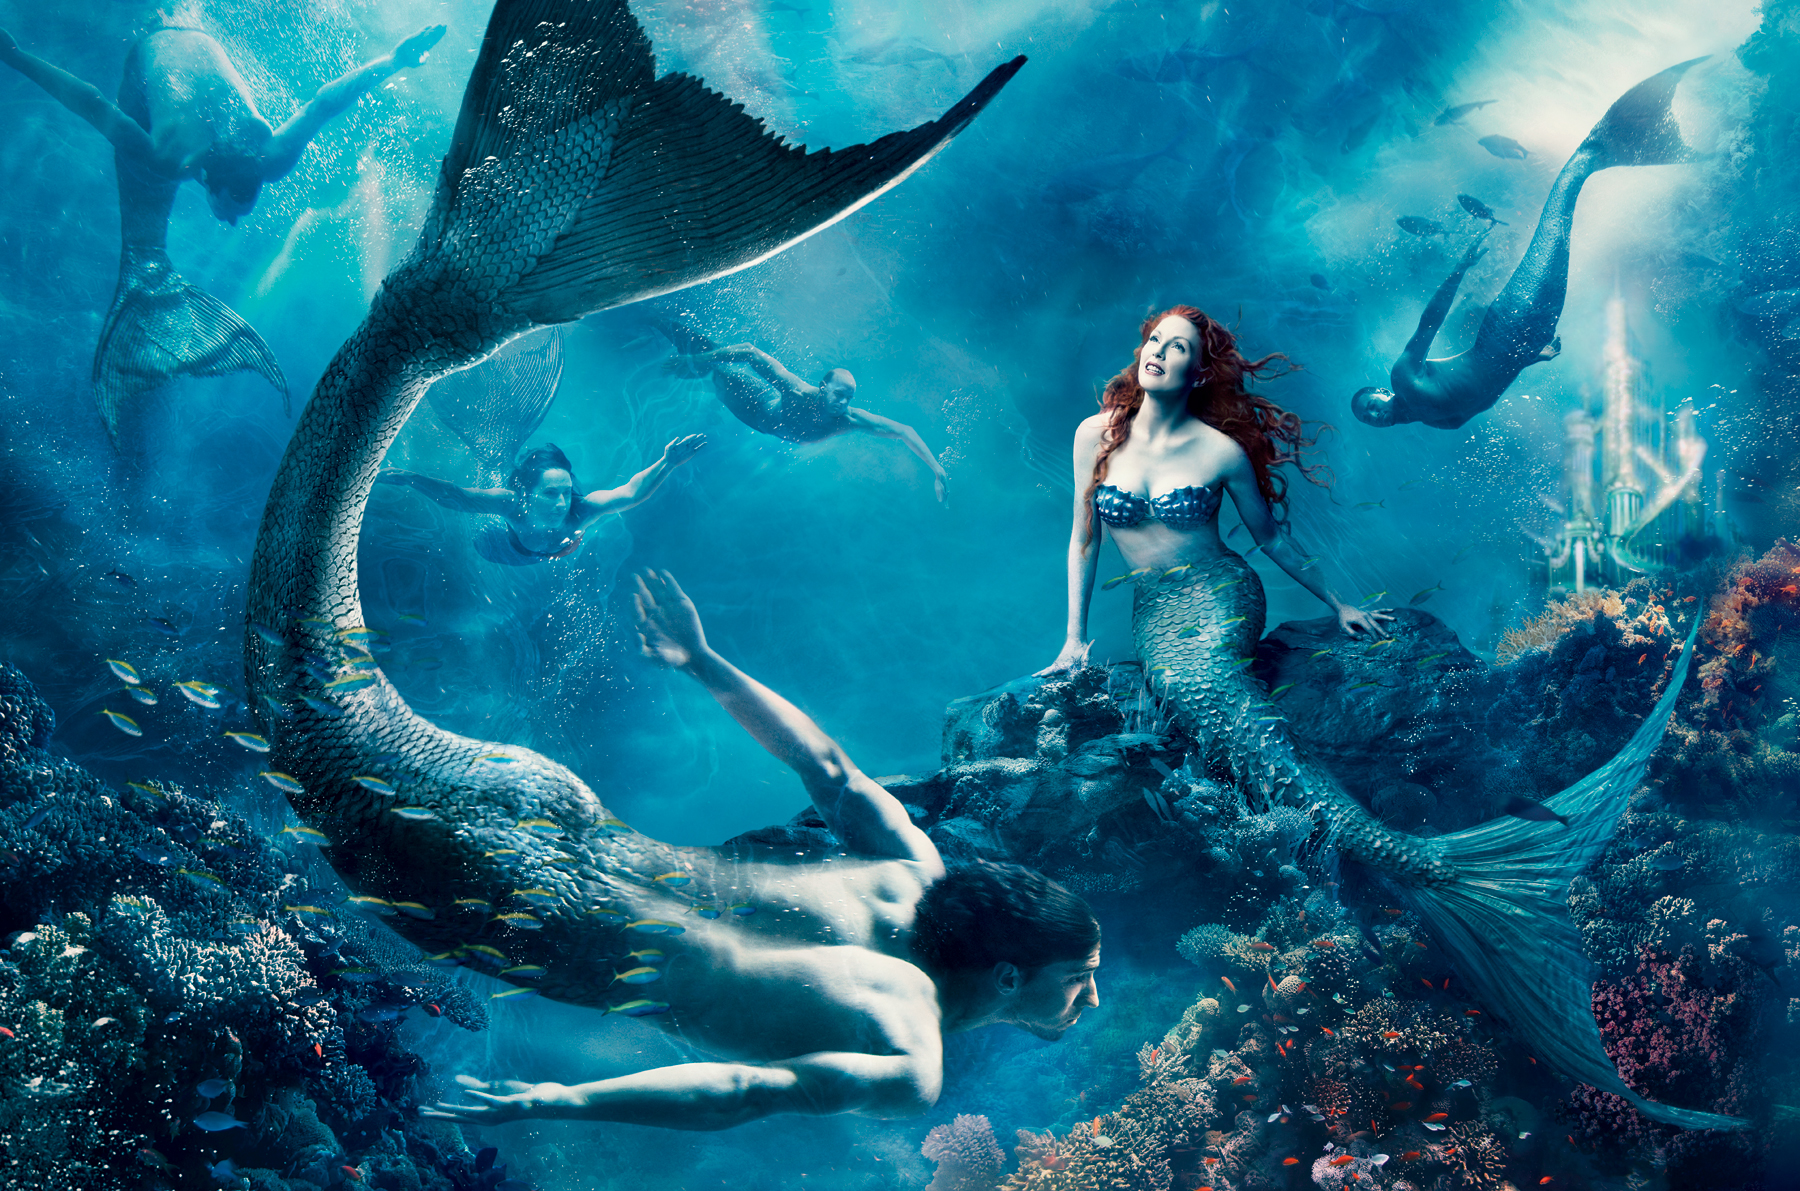 Ariel - Mermaids Photo (30330066) - Fanpop